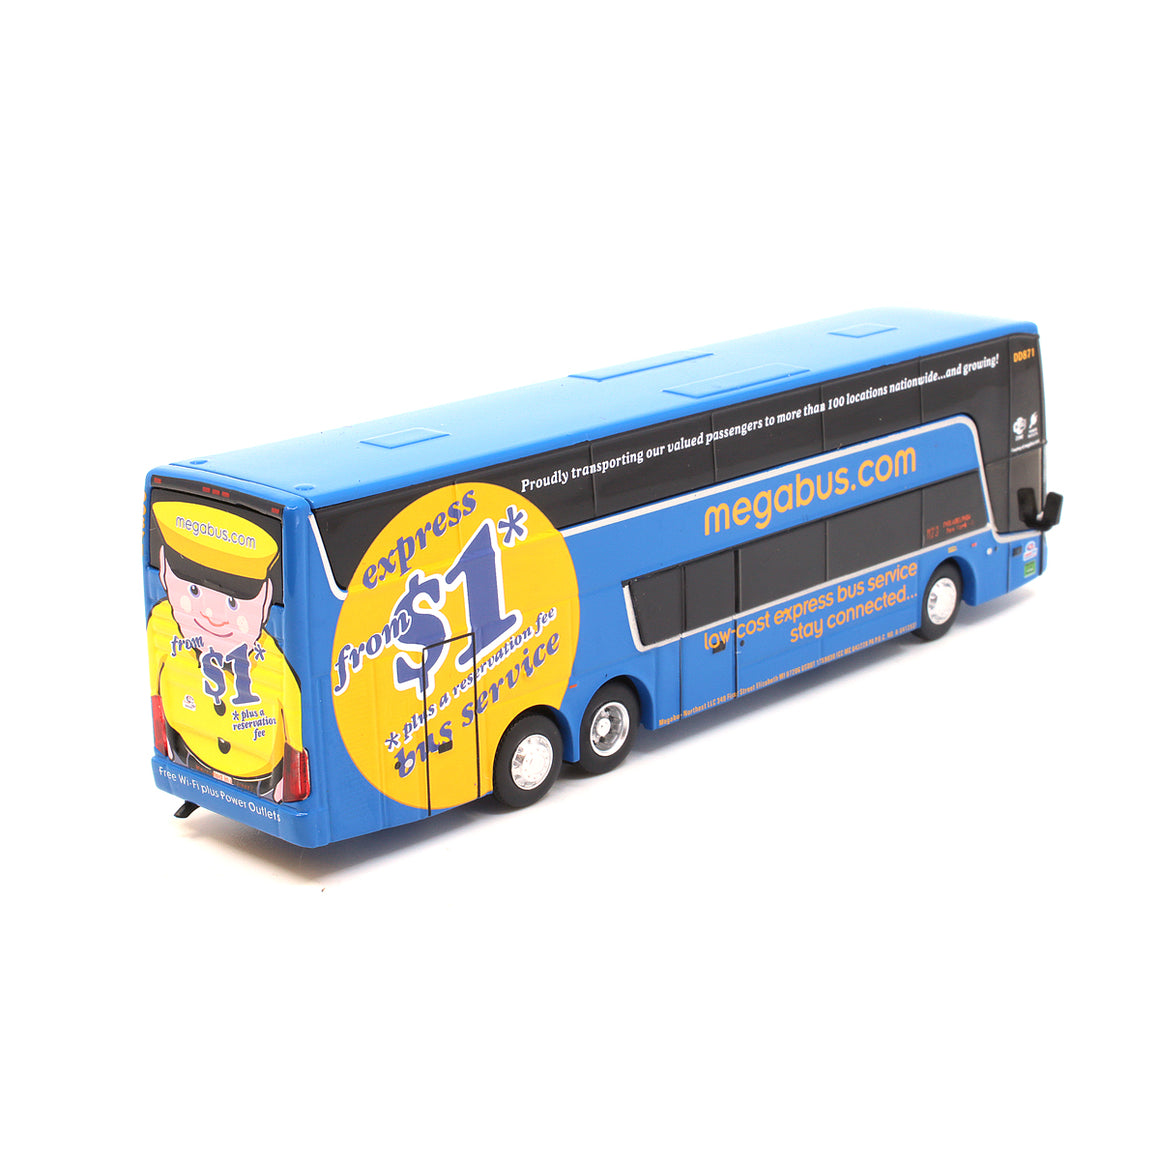 HO Scale: VanHool TDX Double-Deck Motorcoach Bus - Megabus